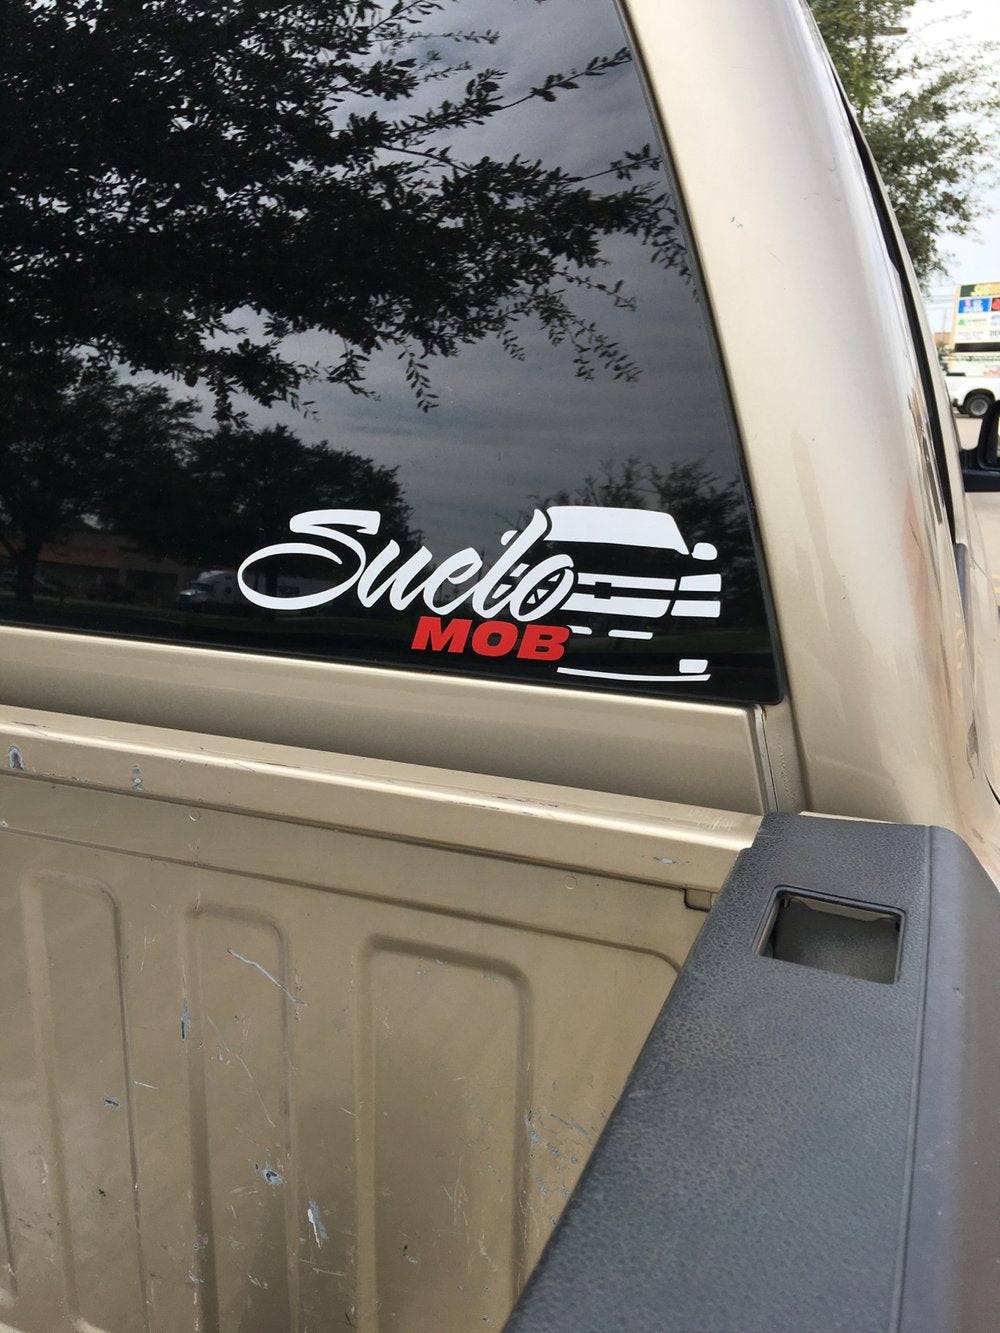 03-06 Chevy Decal